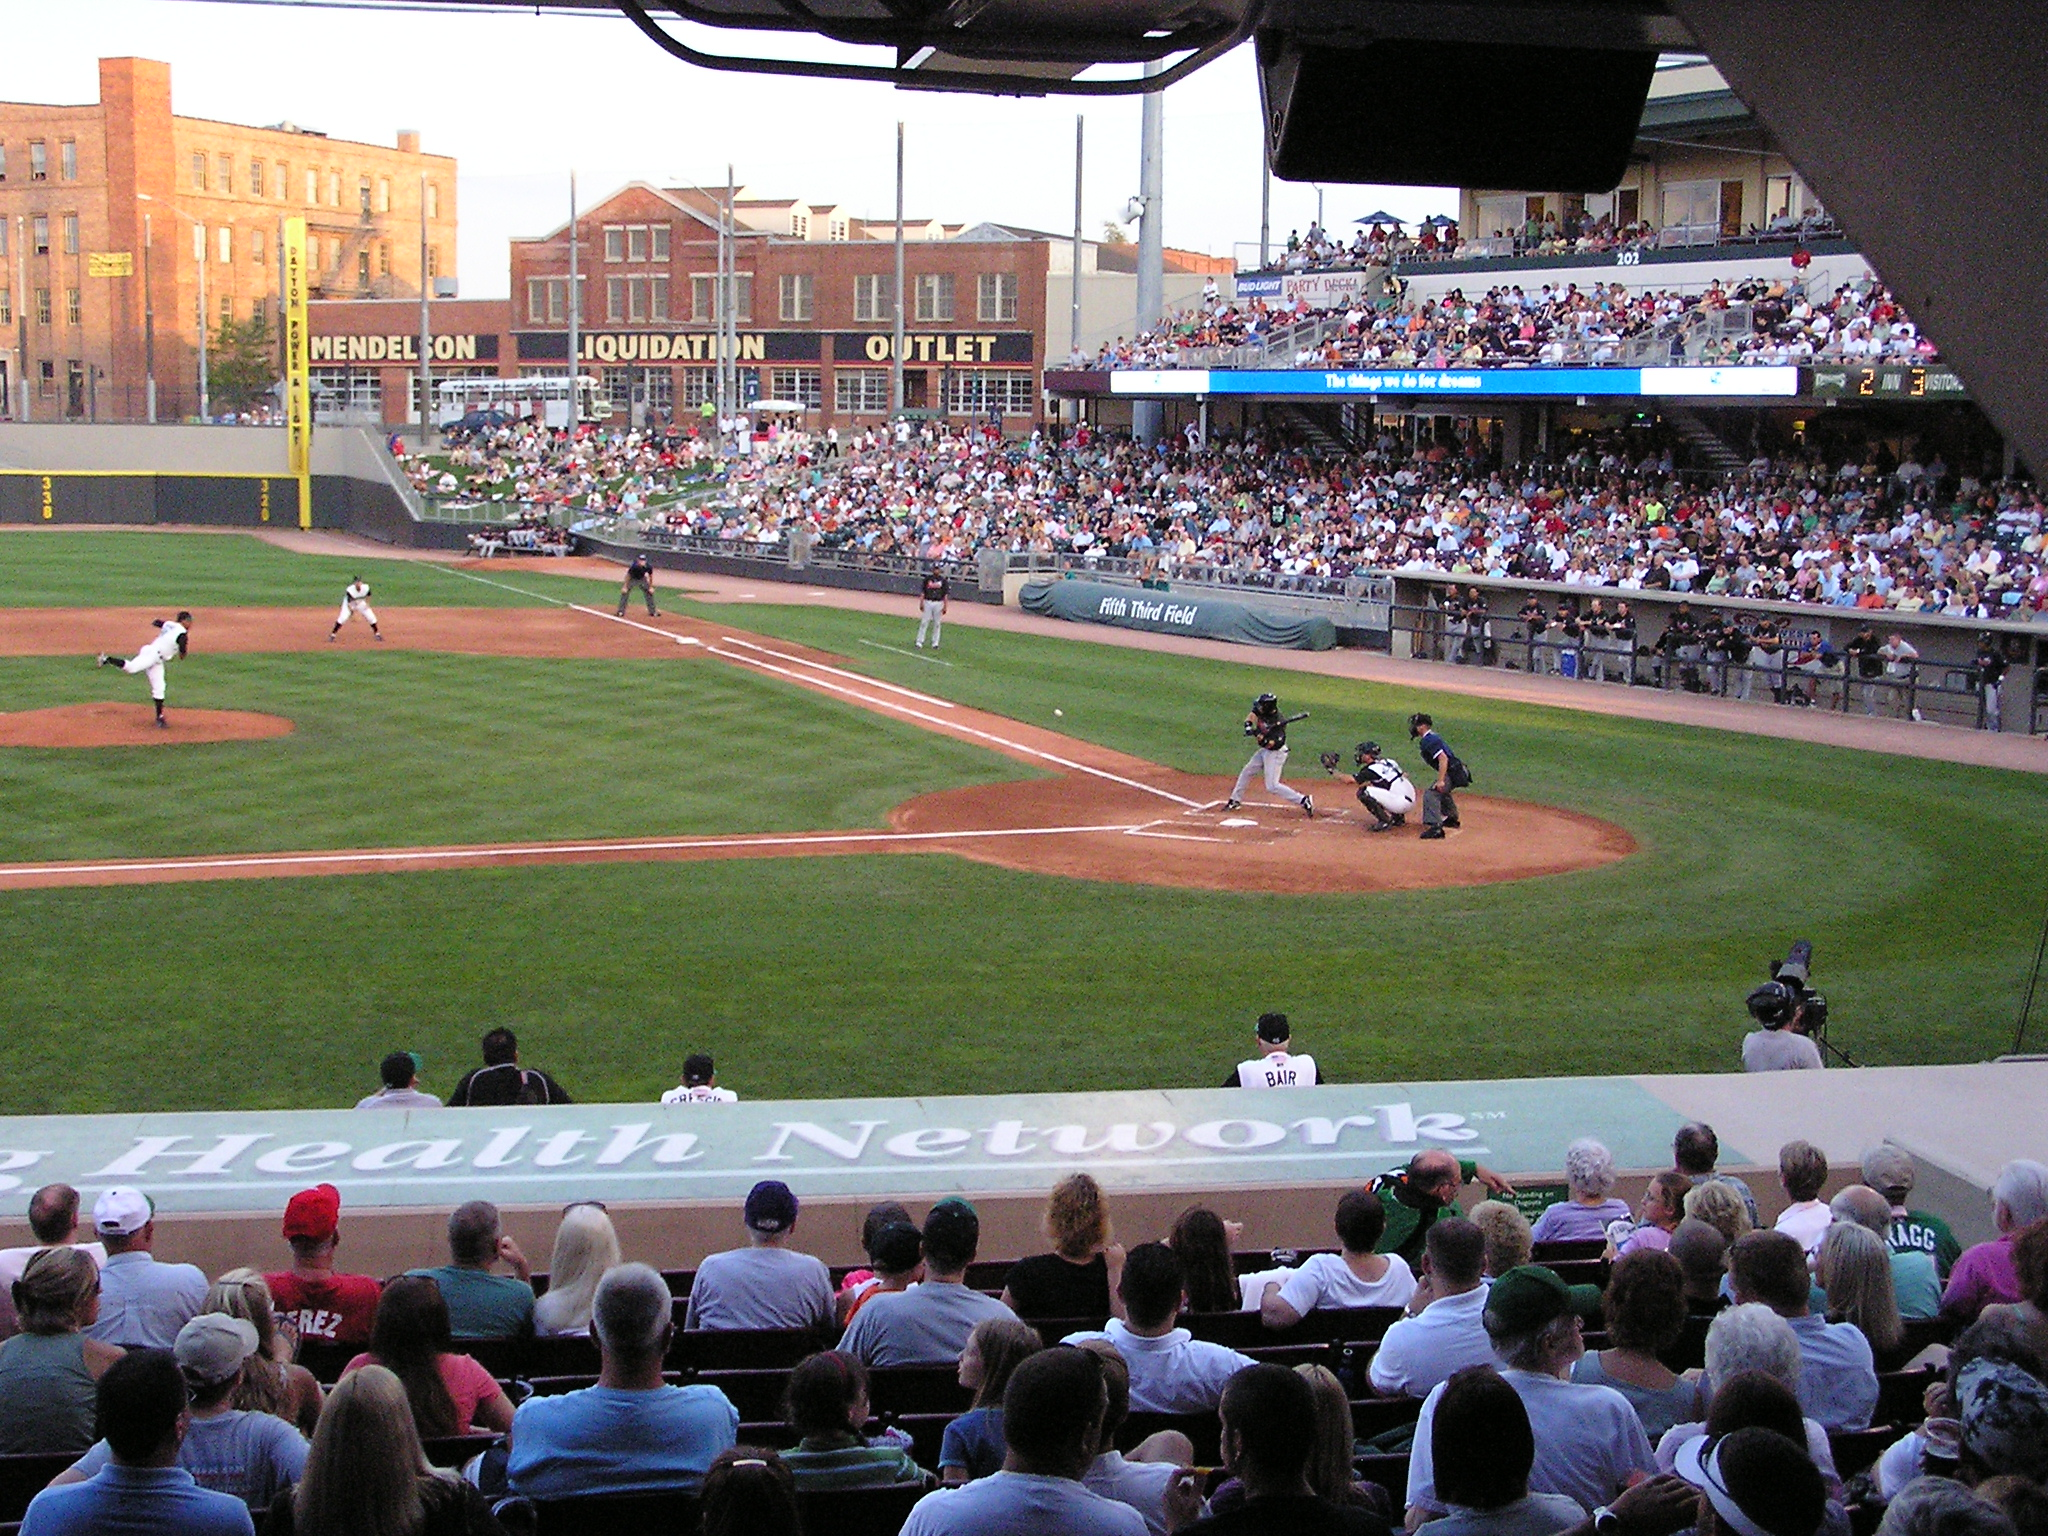 A view in Dayton from the third base side